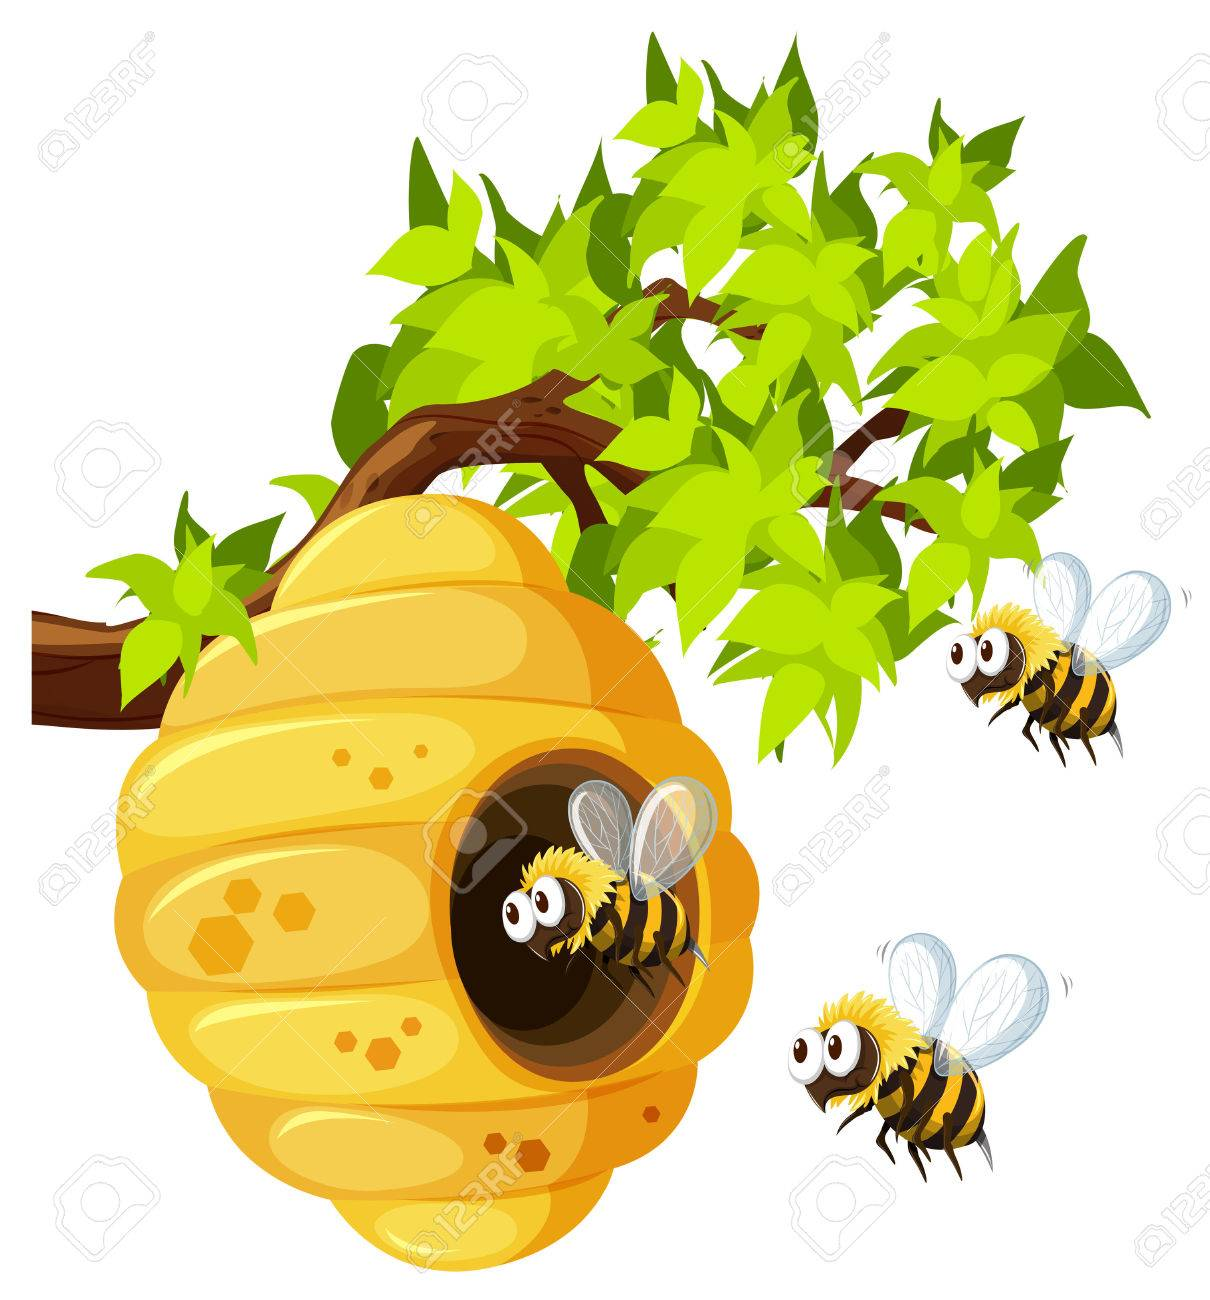 Bees Flying Around Beehive Illustration Royalty Free Cliparts ...